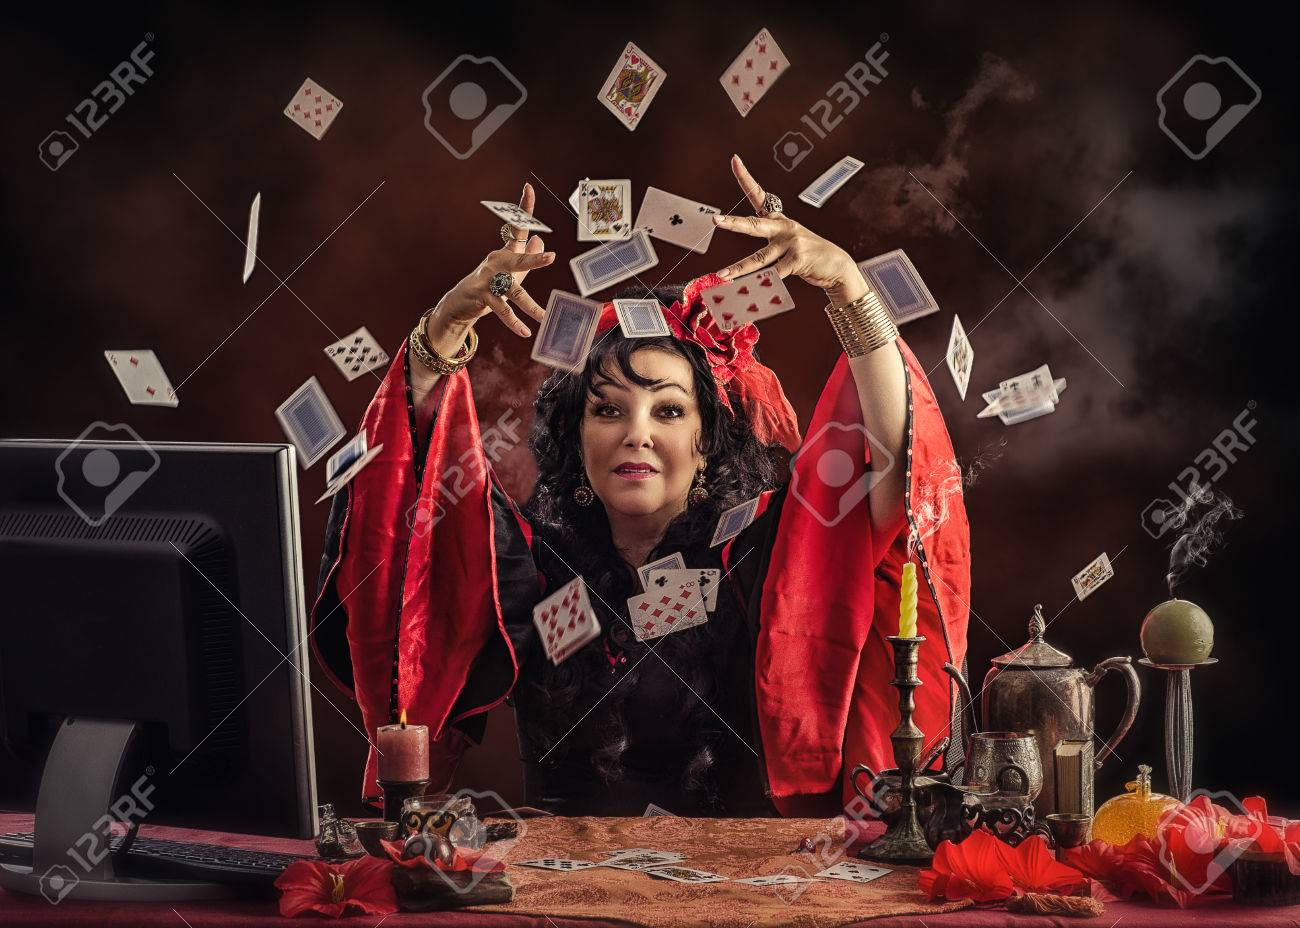 Mature Gypsy fortune-teller sitting opposite monitor tossing